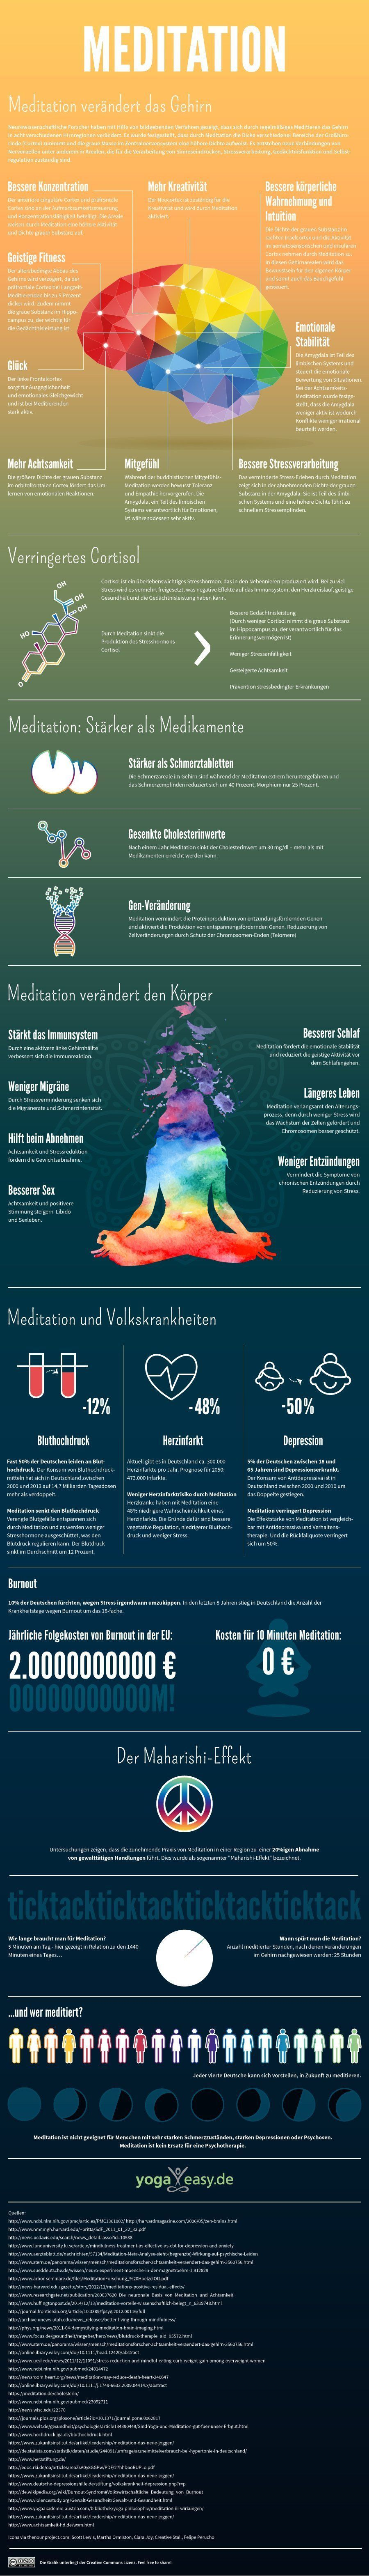 Infographic: Proven effects of meditation -  Meditation works, we know from experience. But science...